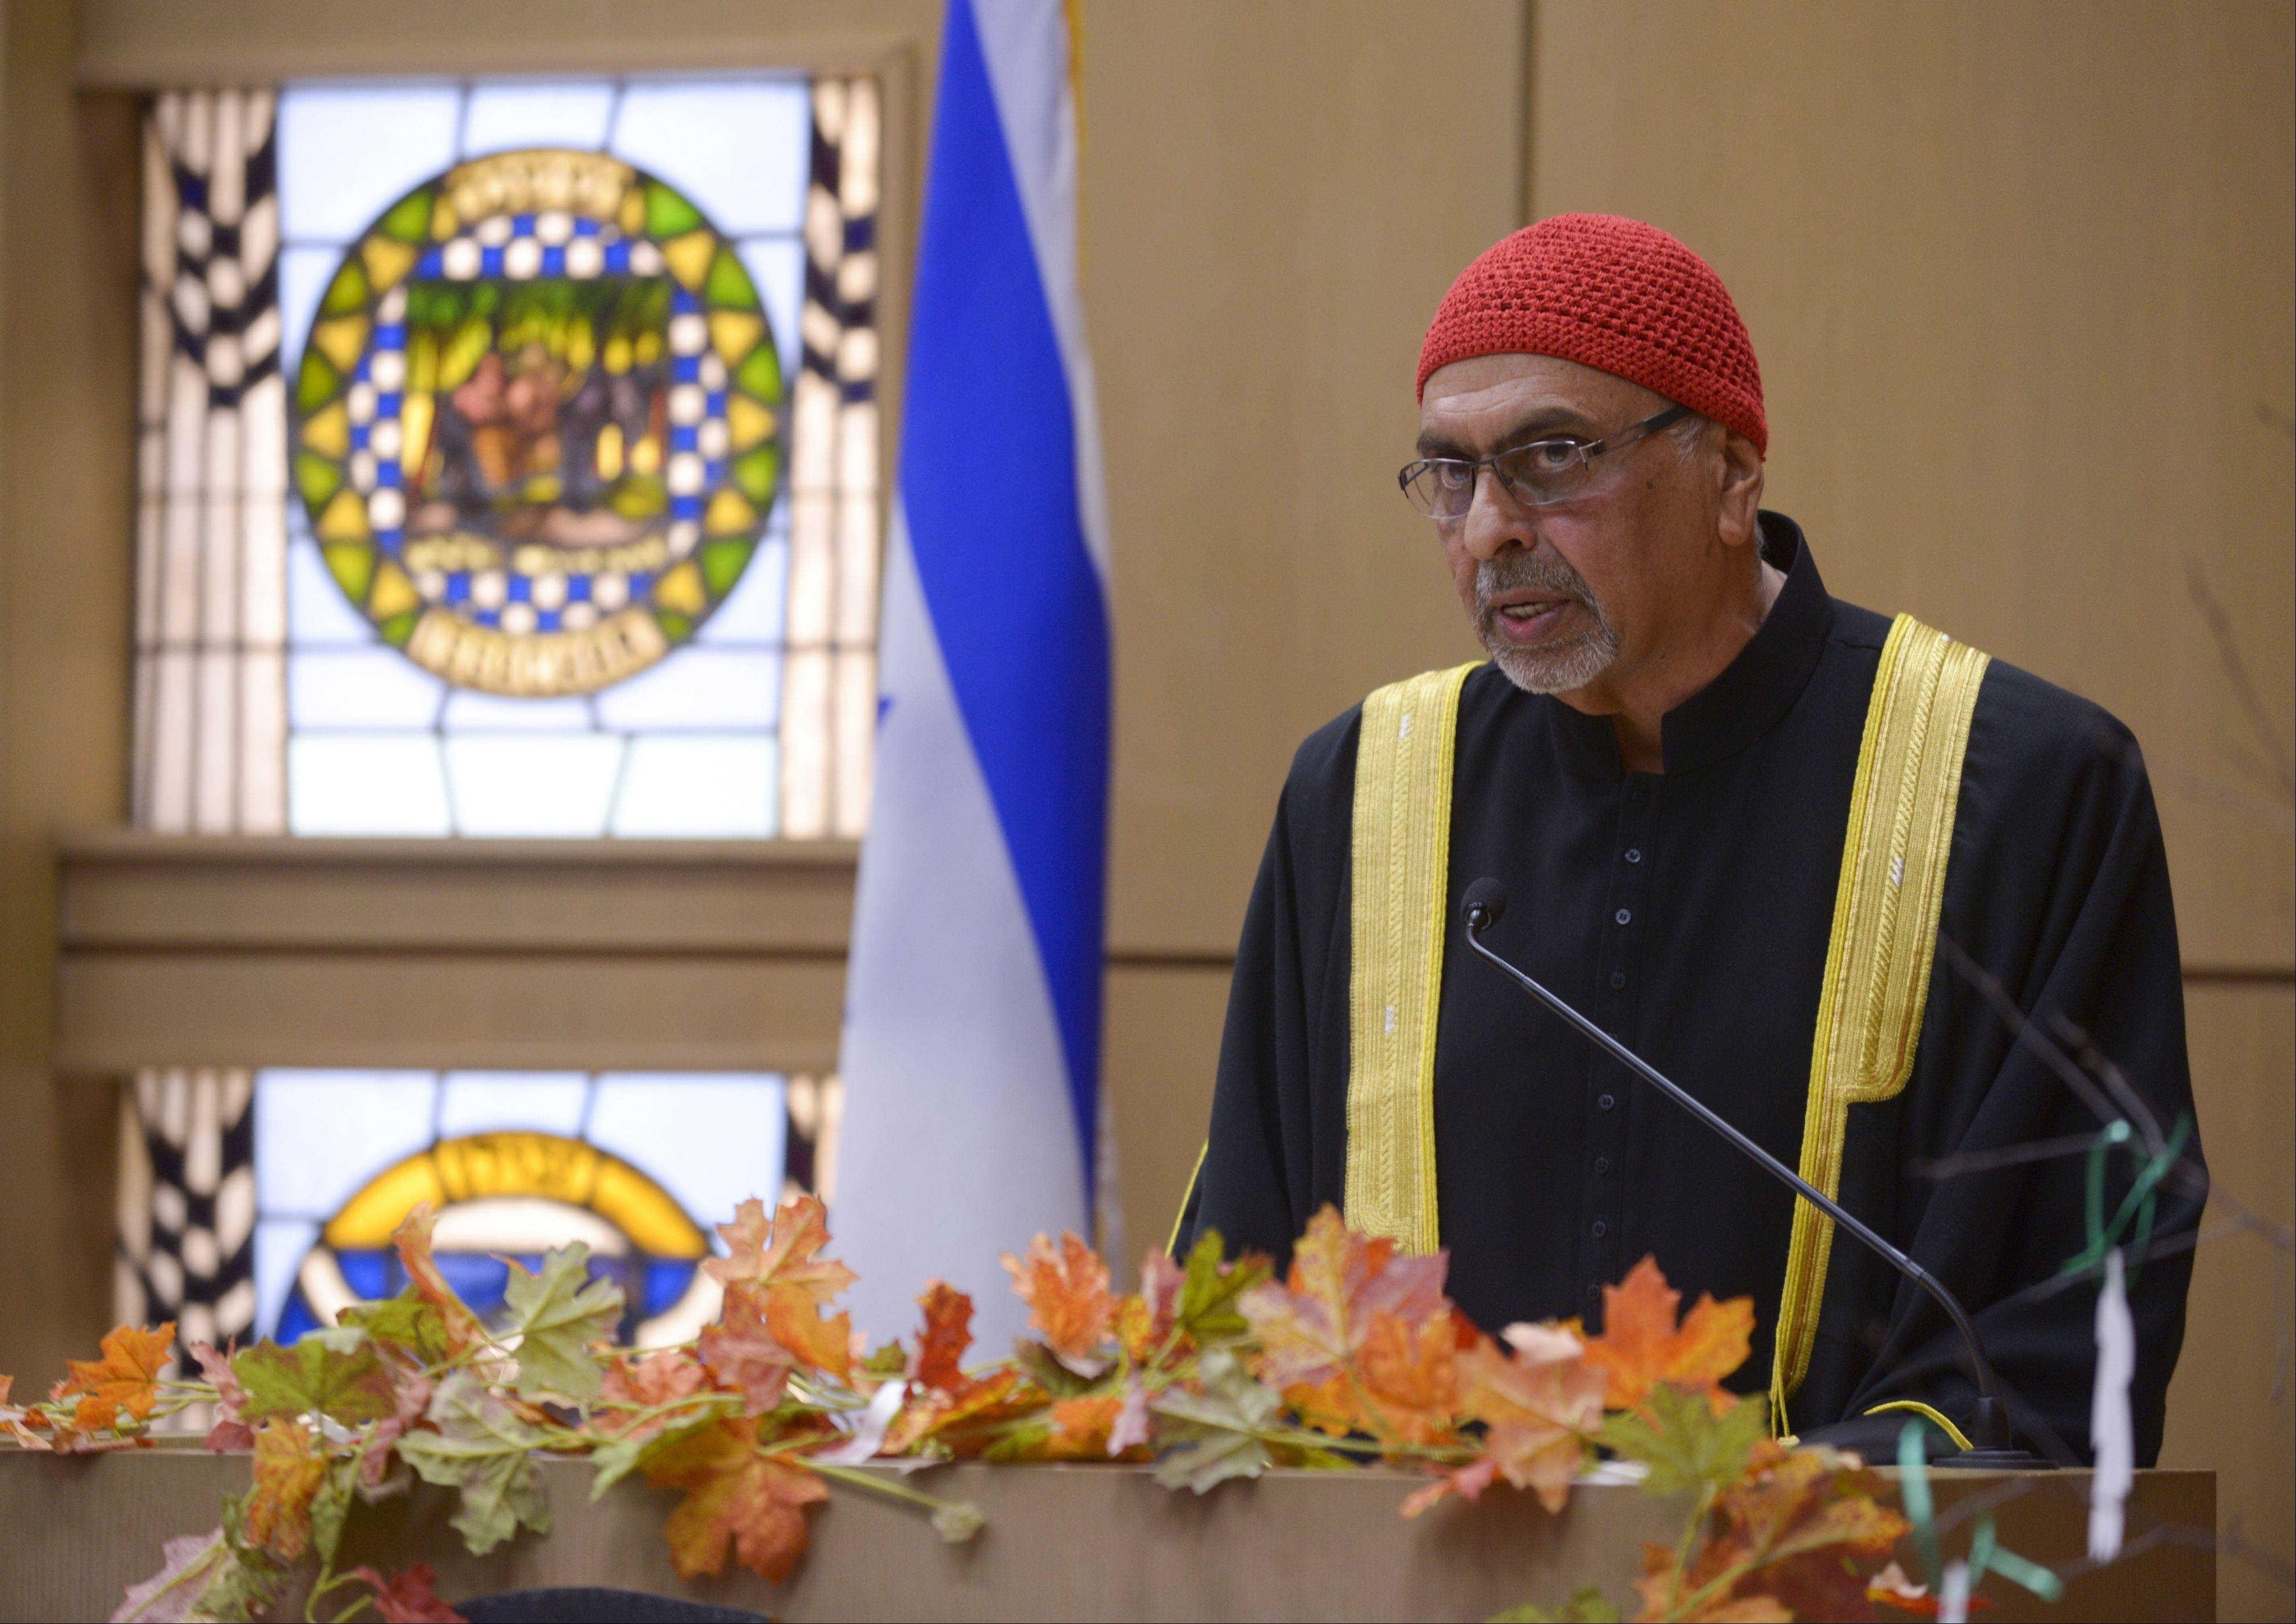 Dr. Abbas Khawaja, representing the Muslin community, speaks during the Interfaith Thanksgiving service at Temple B'nai in Aurora. The annual event brings together worshippers from many faiths to give thanks.